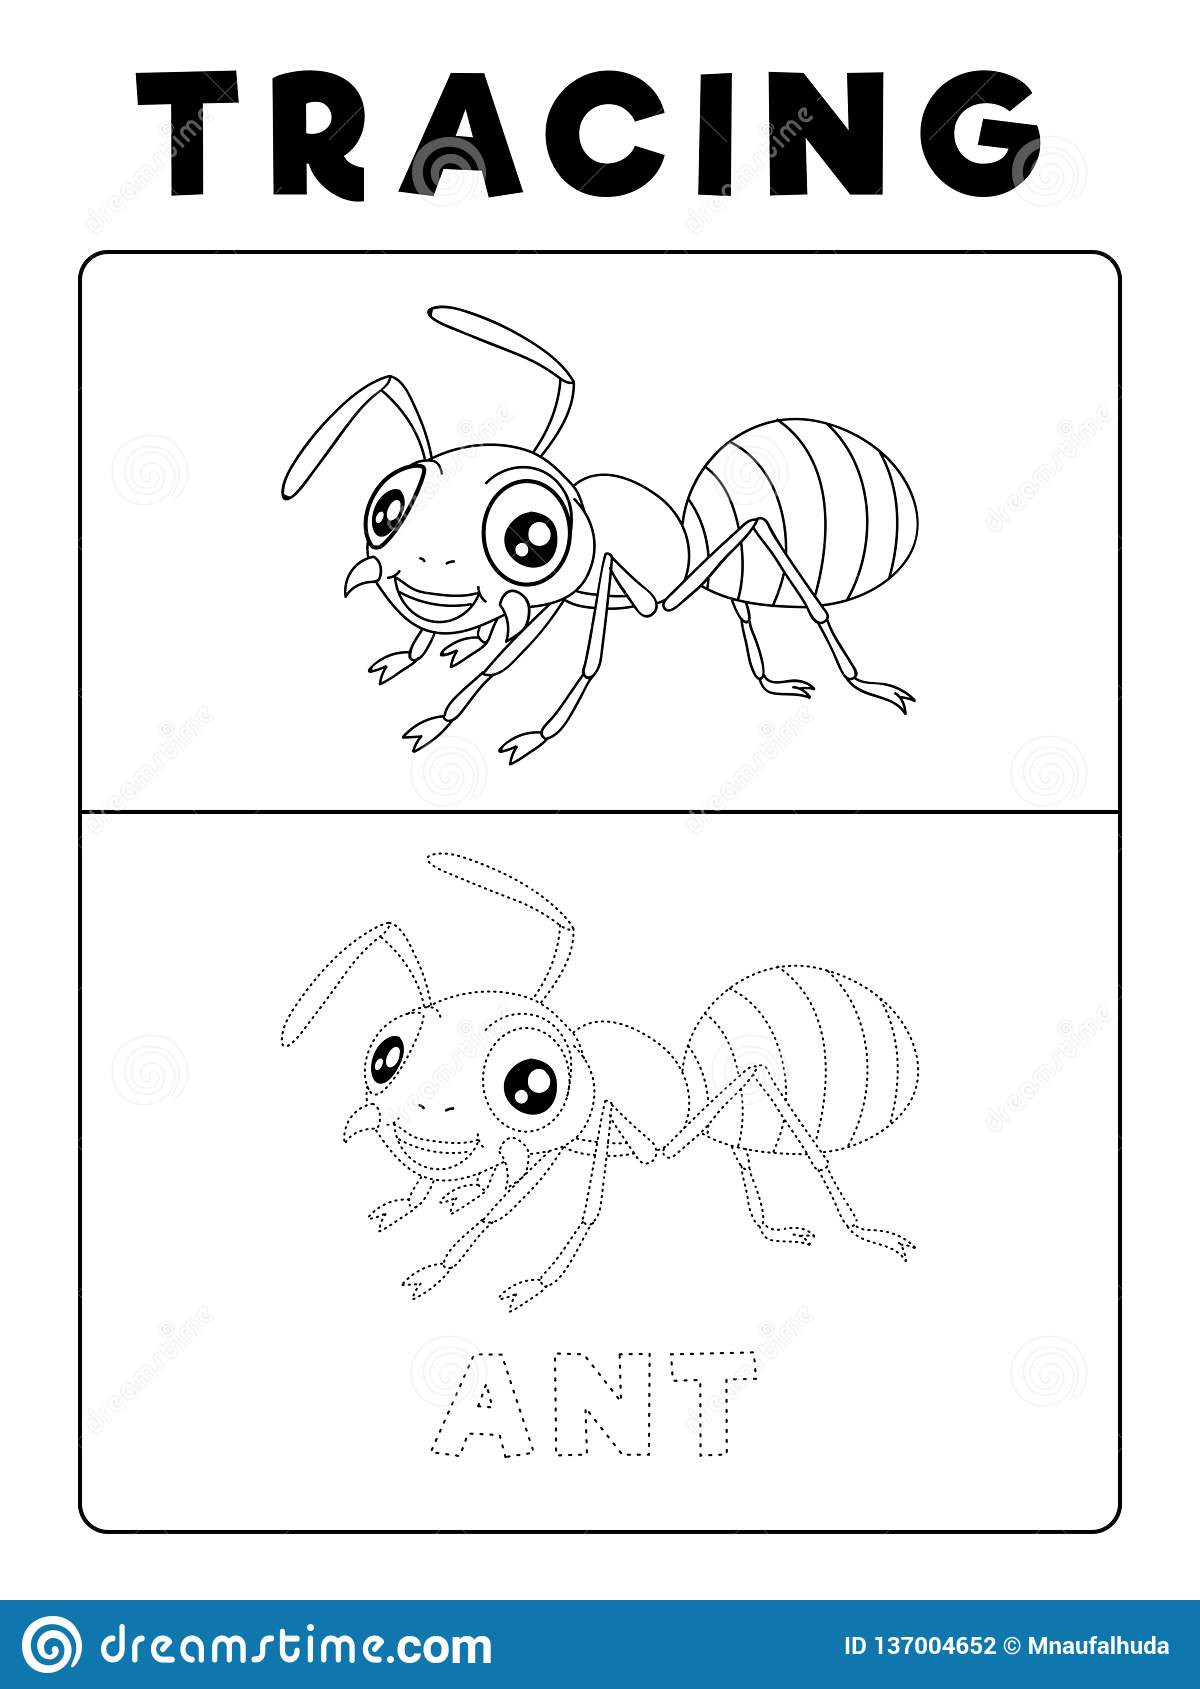 Bug Worksheets for Preschool Funny Ant Insect Animal Tracing Book with Example Preschool